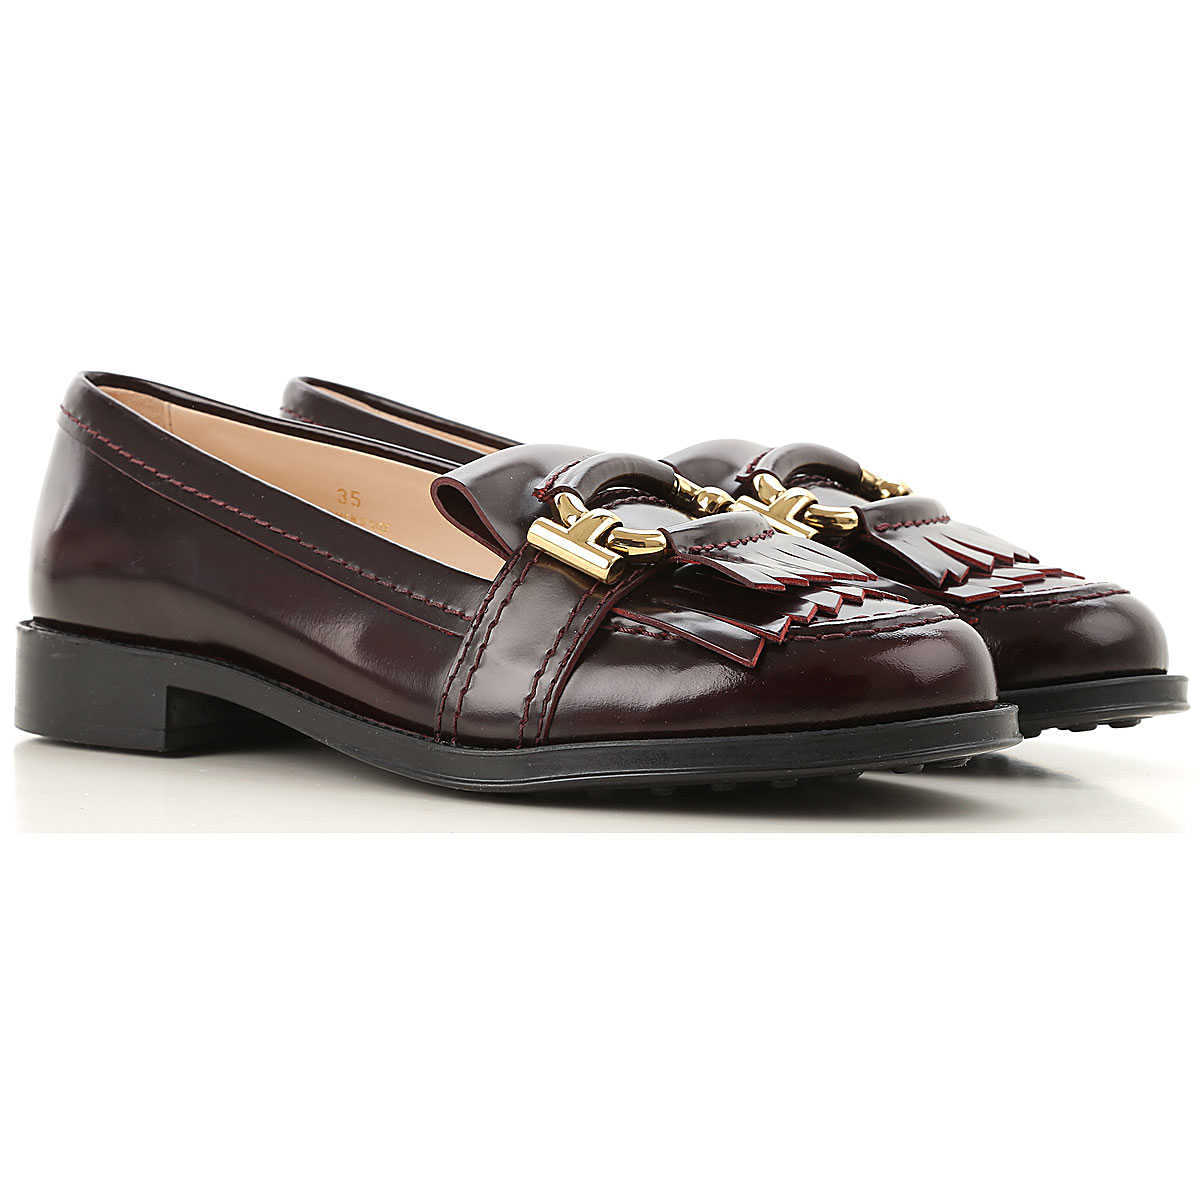 Tods Loafers for Women On Sale Must - GOOFASH